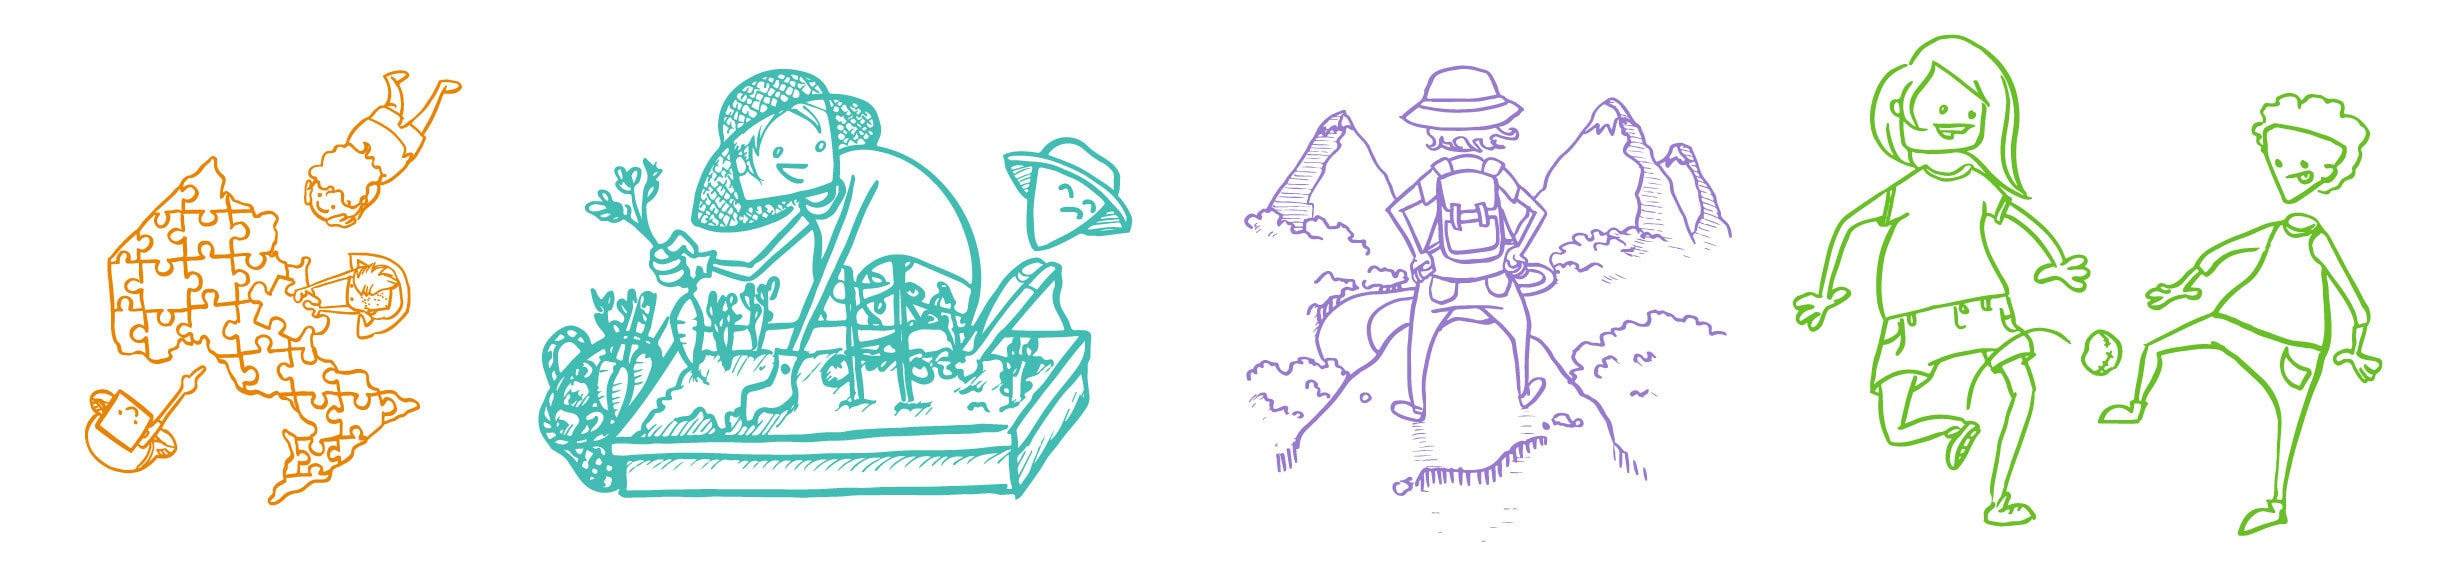 illustrations of different characters performing wholesome activities, like gardening, playing hackey sack, or hiking.